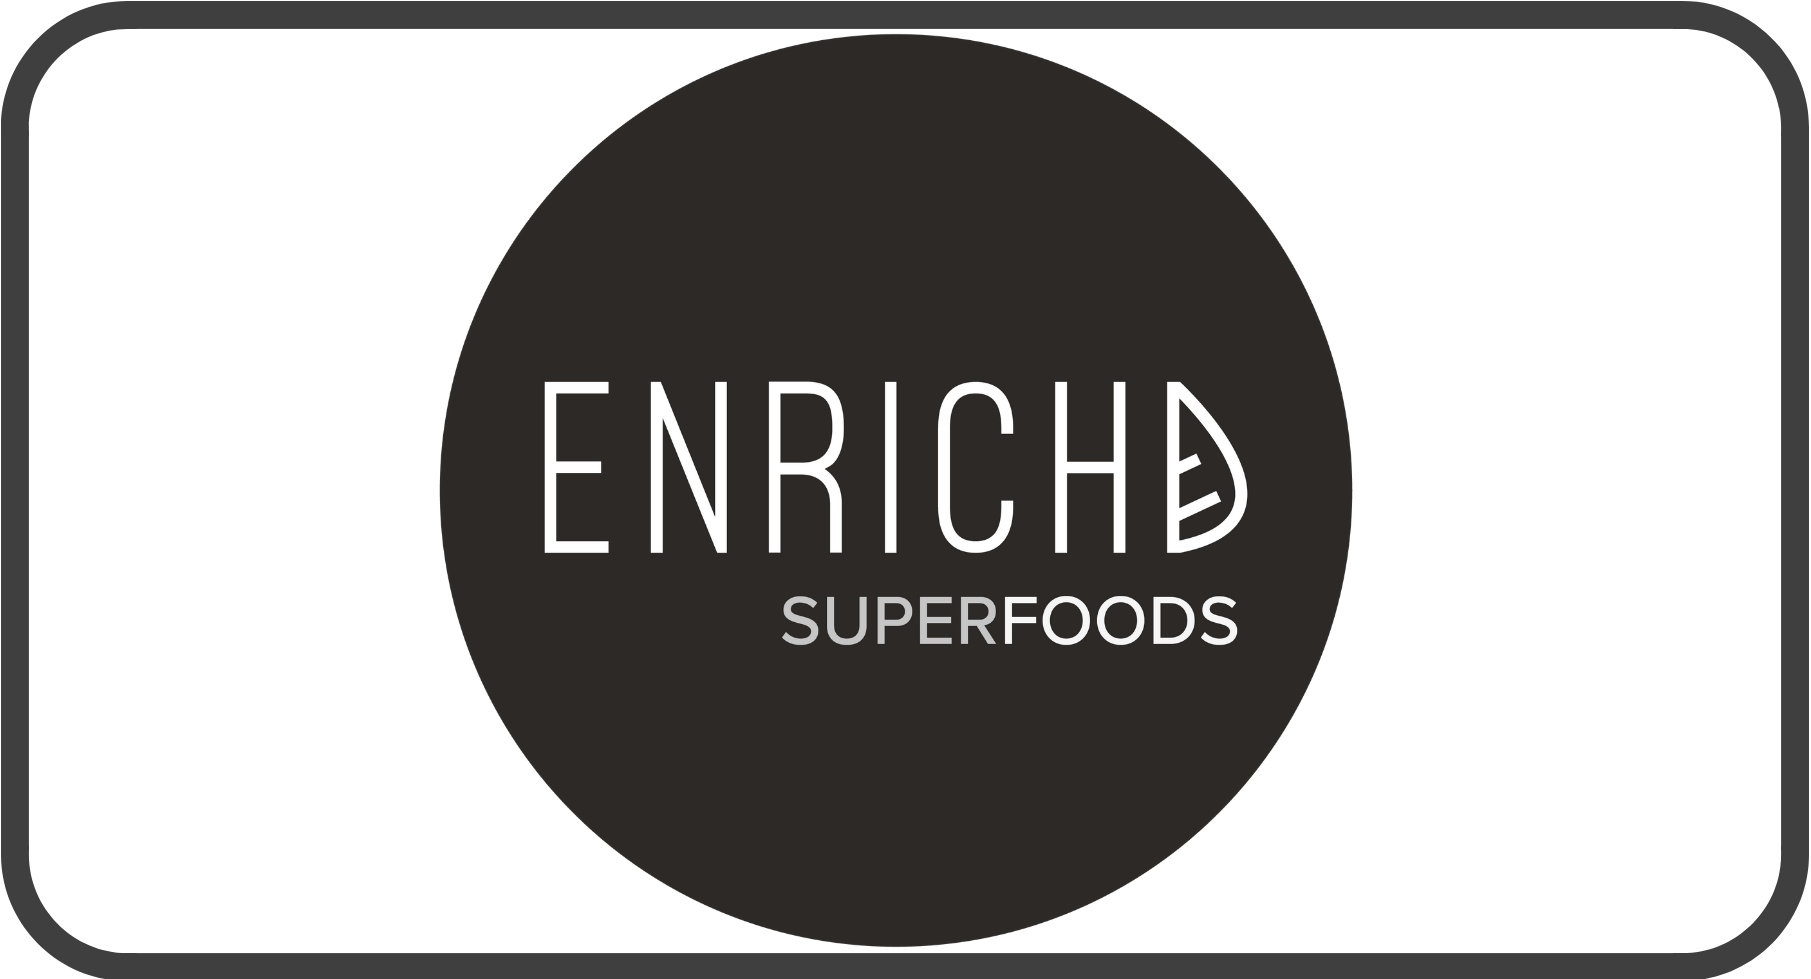 enrichd superfoods shop